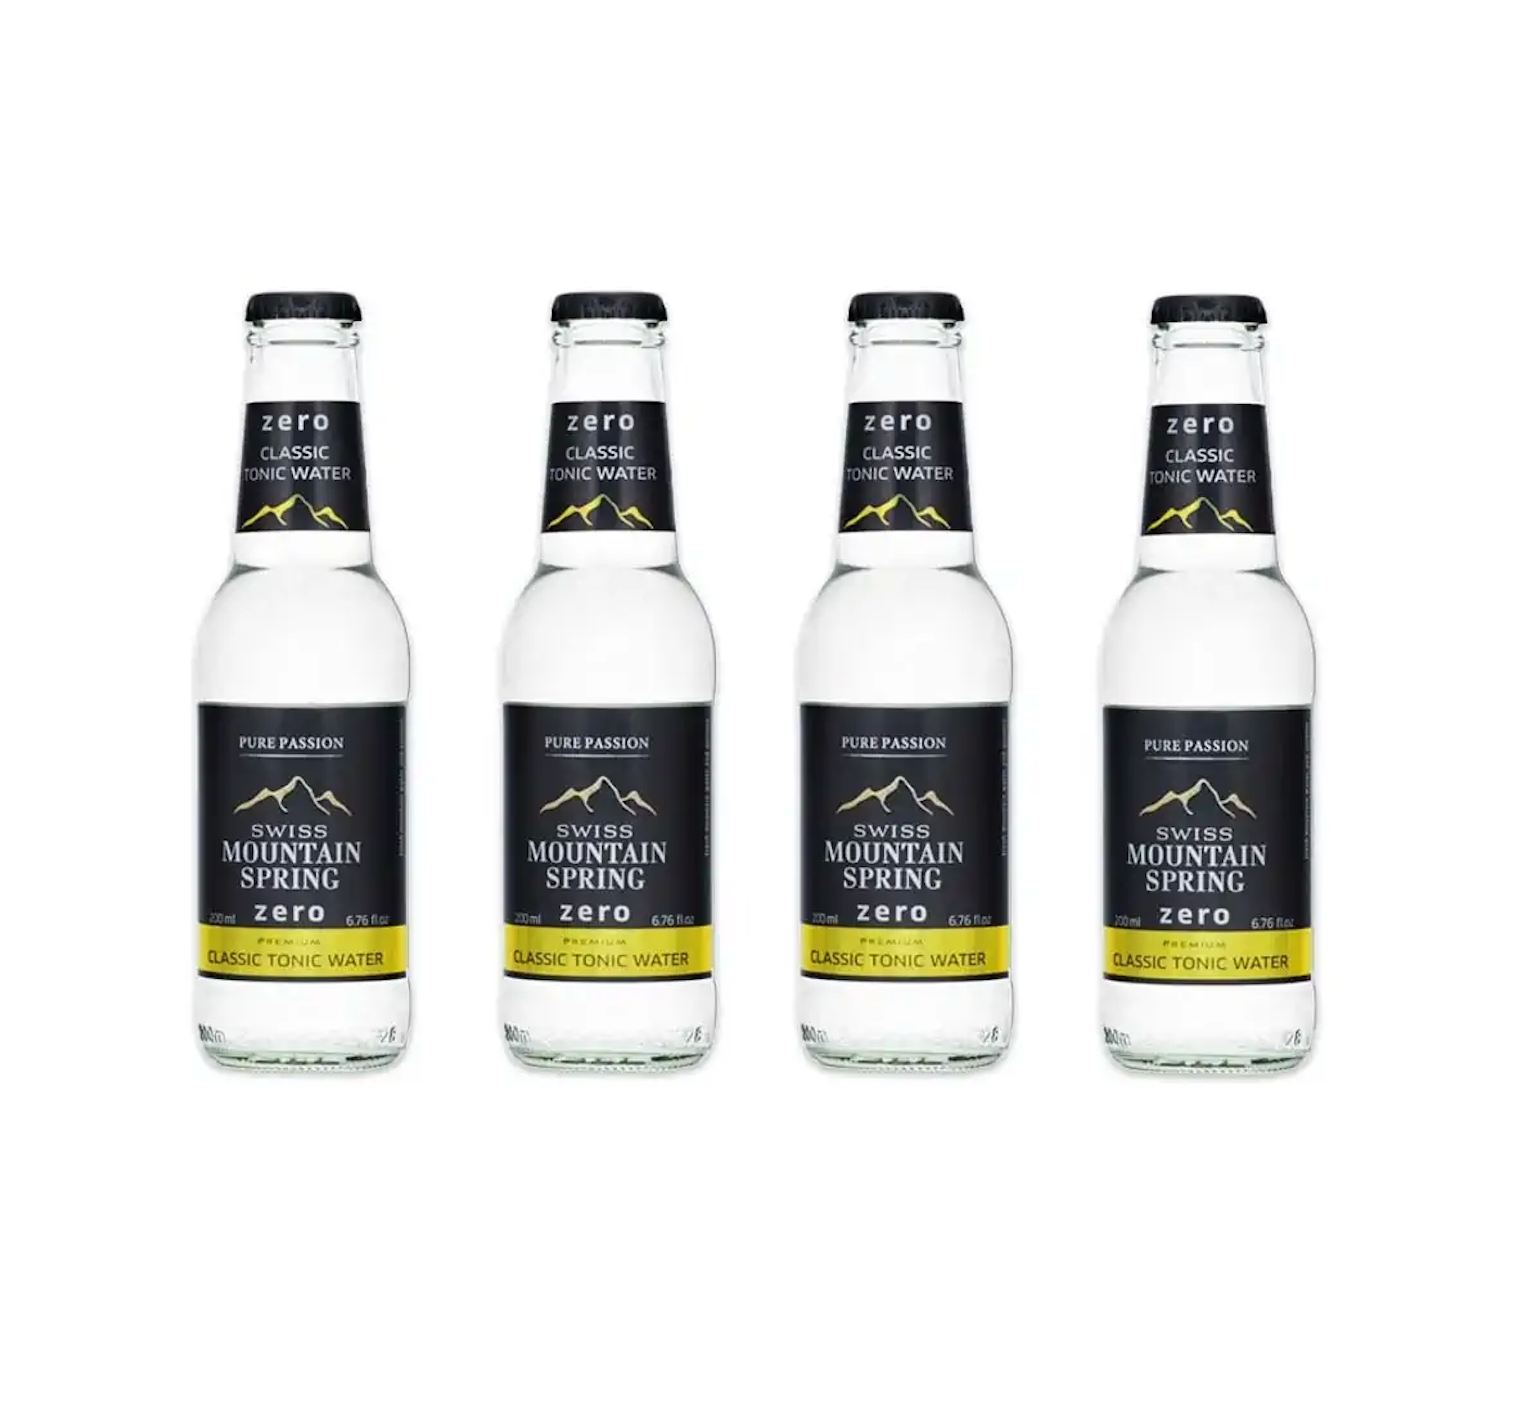 Swiss Mountain Spring Zero Tonic Water x4